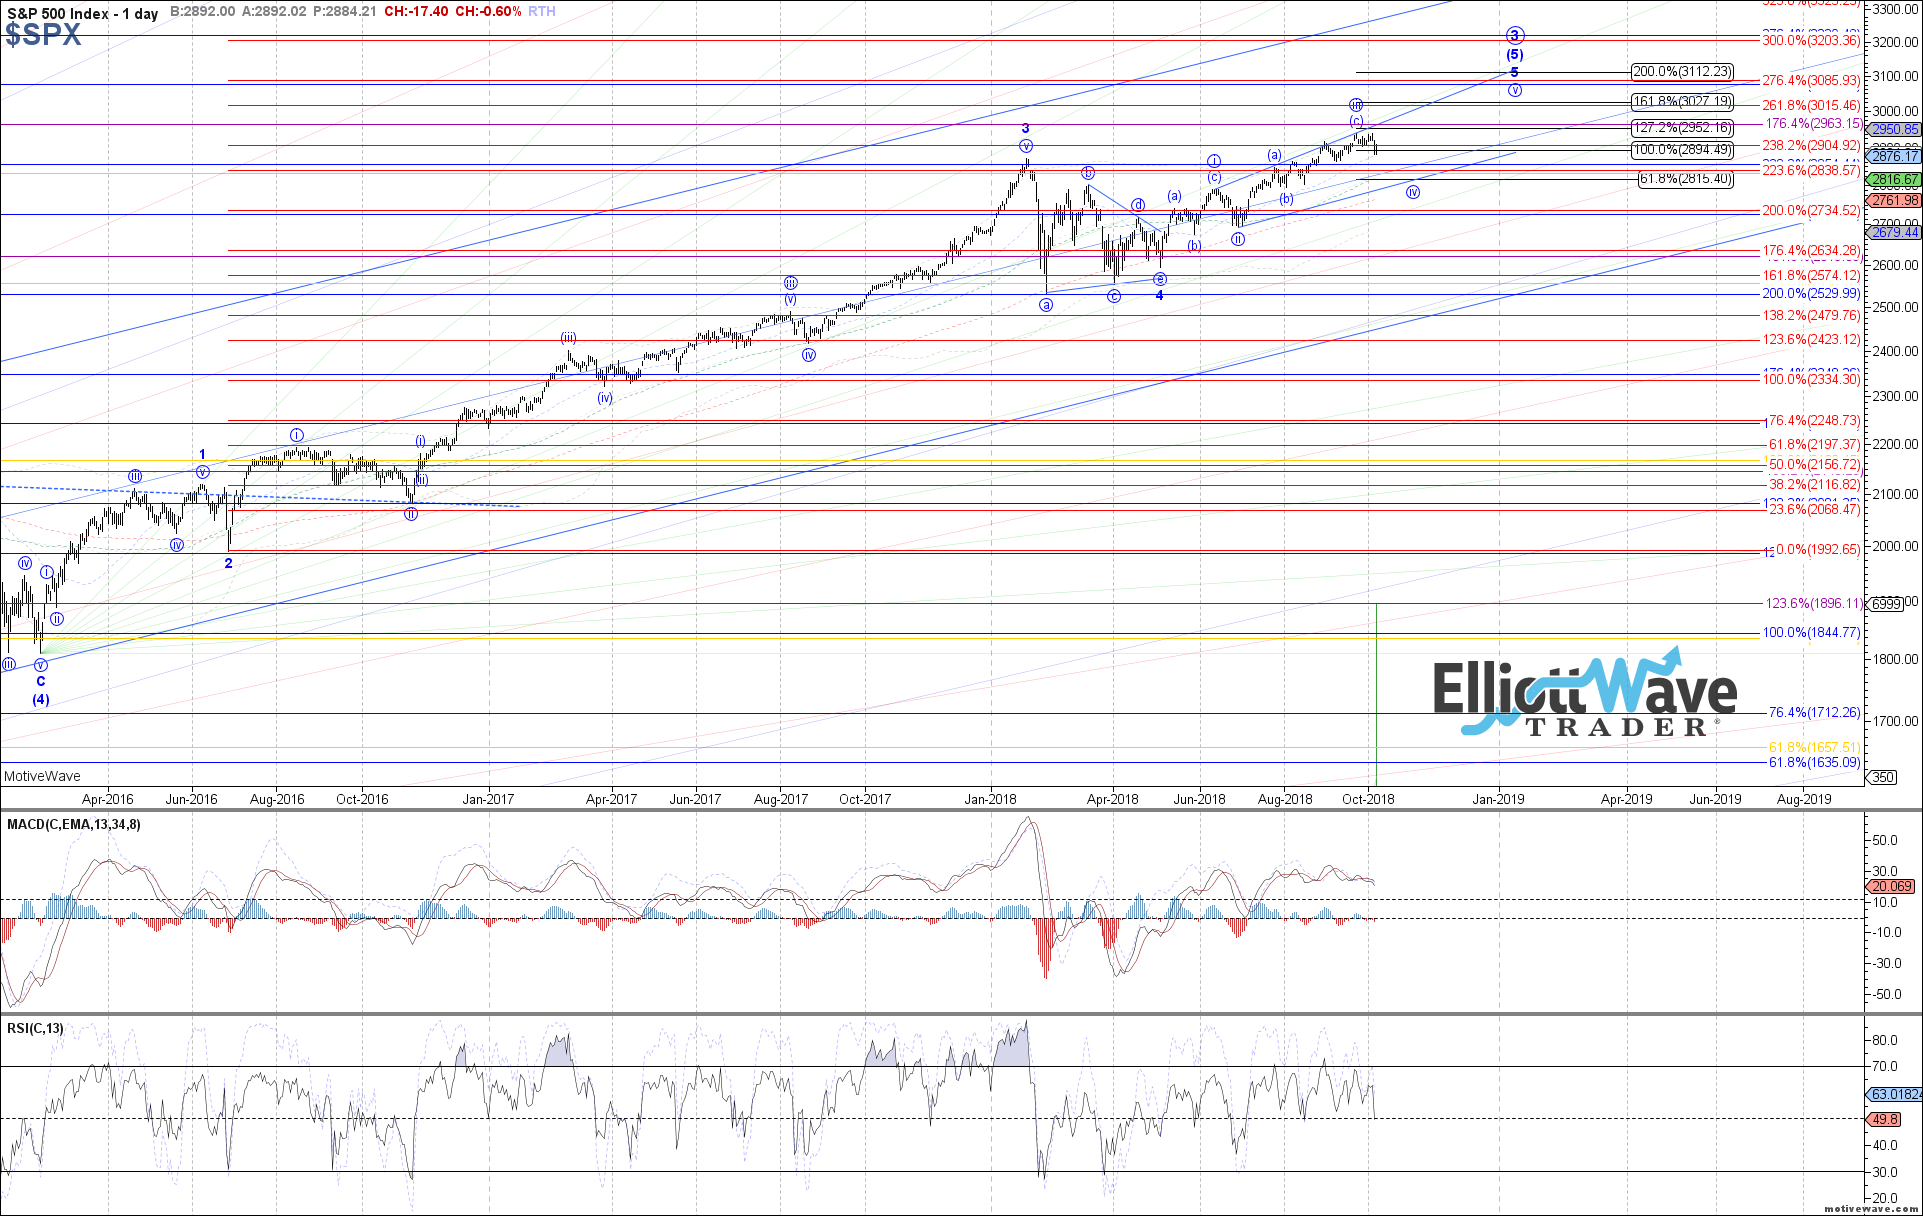 $SPX - Primary Analysis - Oct-05 0844 AM (1 day)